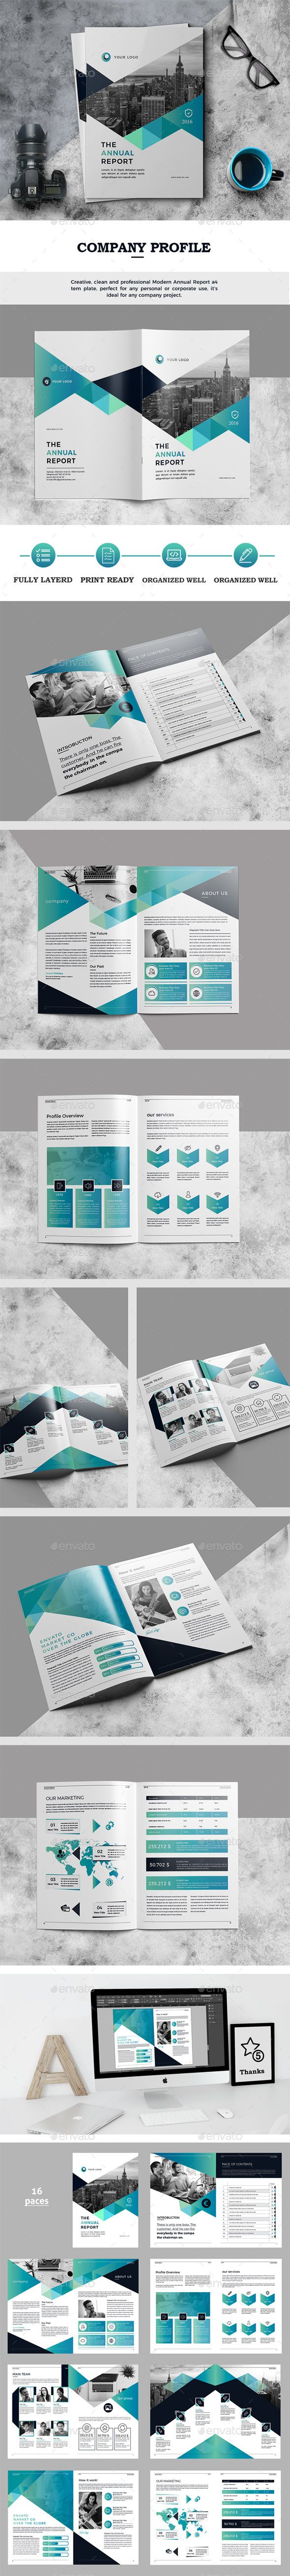 Brochure | Folletos, Portafolio y Revistas